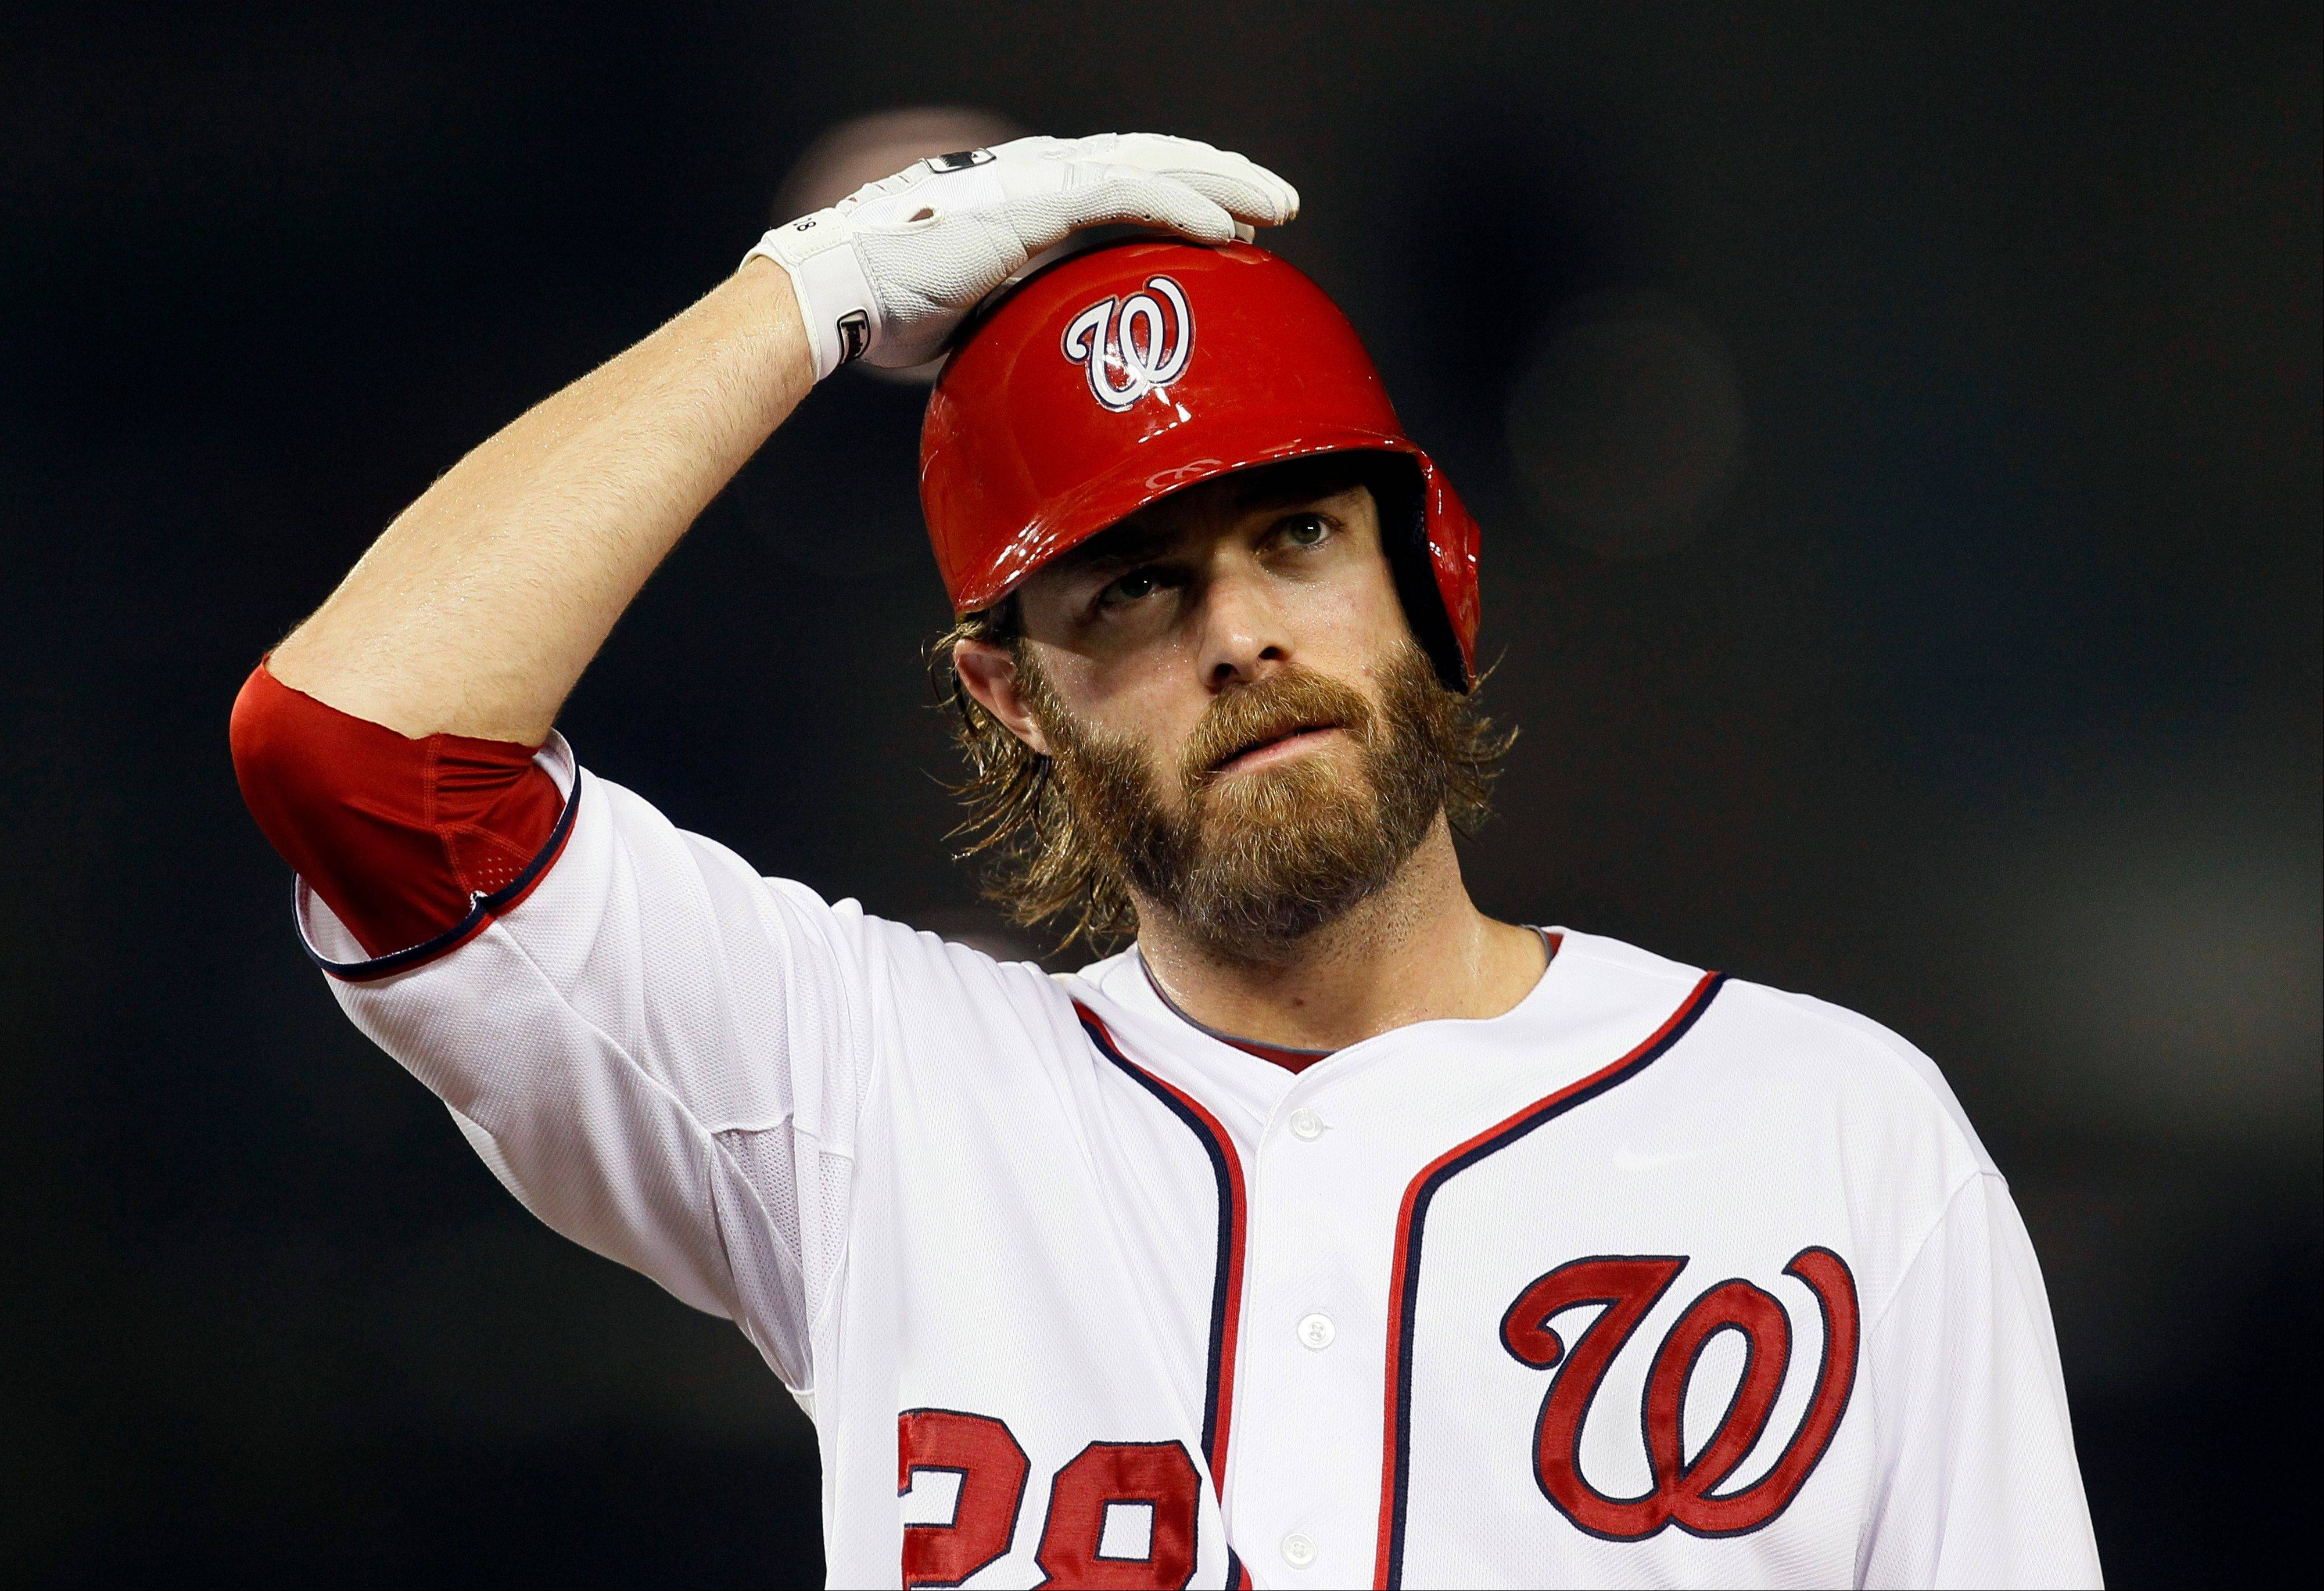 The Nationals' Jayson Werth walks back to first base during the eighth Thursday against the Phillies in Washington. Nearly three months ago, Werth broke his left wrist in a loss to Philadelphia.